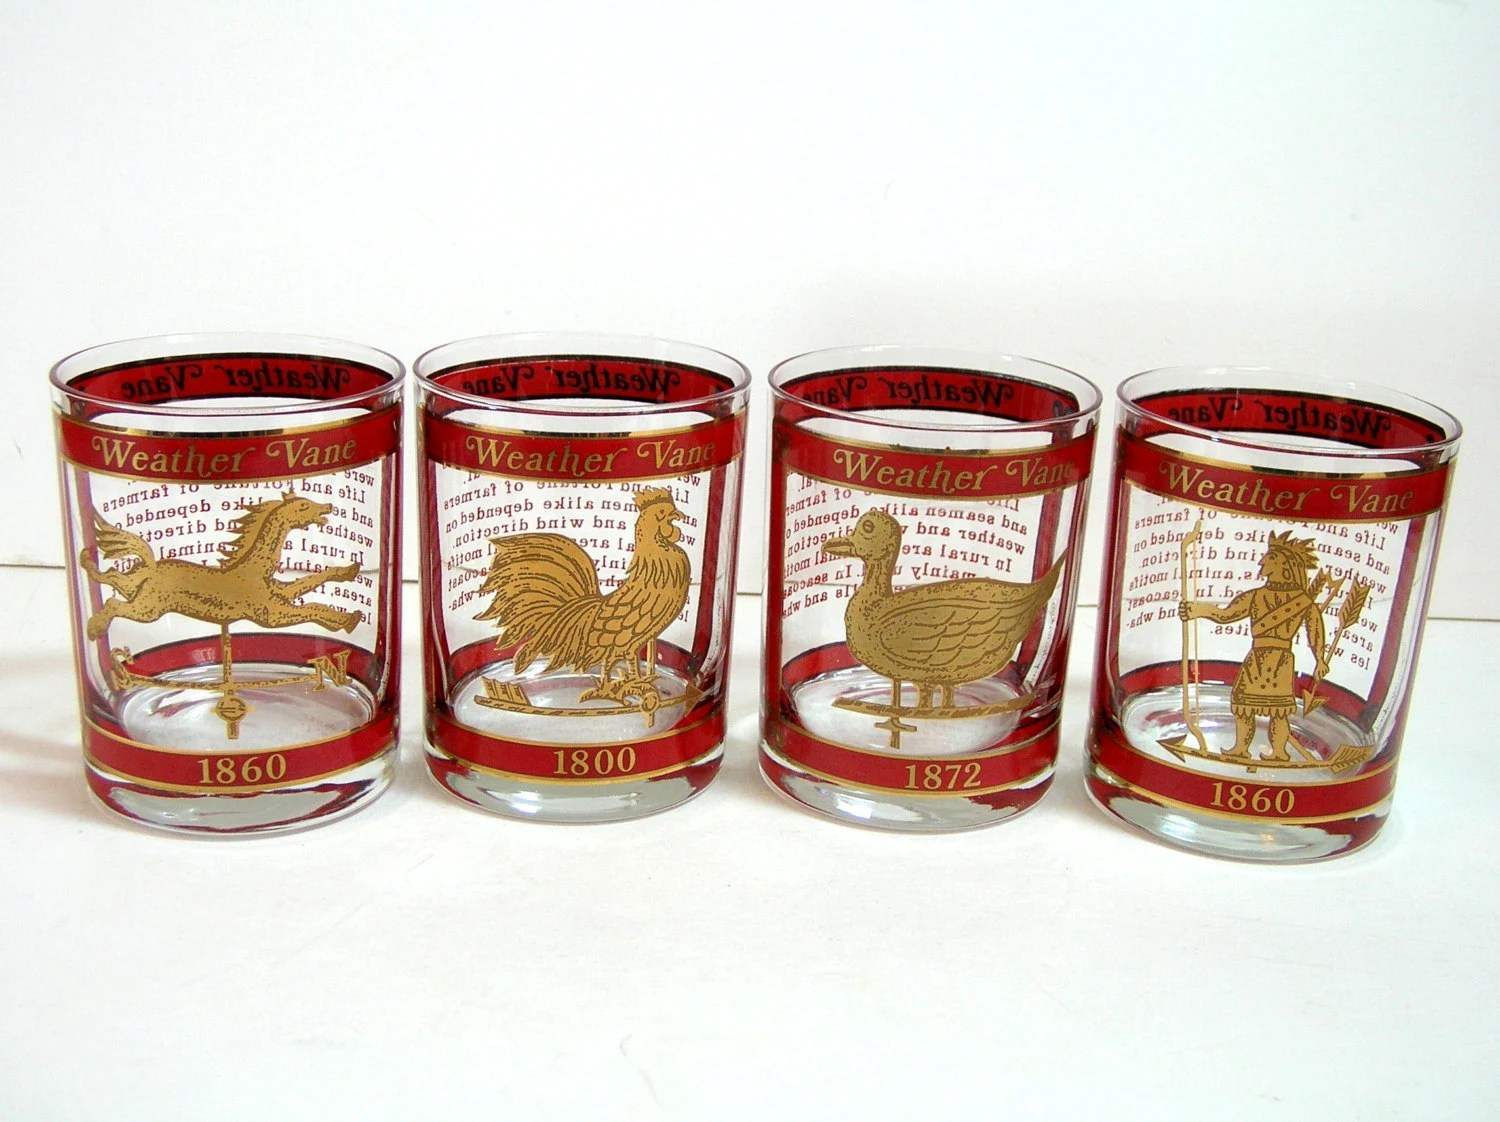 Drinking Glasses Designs Vintage Drinking Glasses With Weathervane Design Bar Glasses